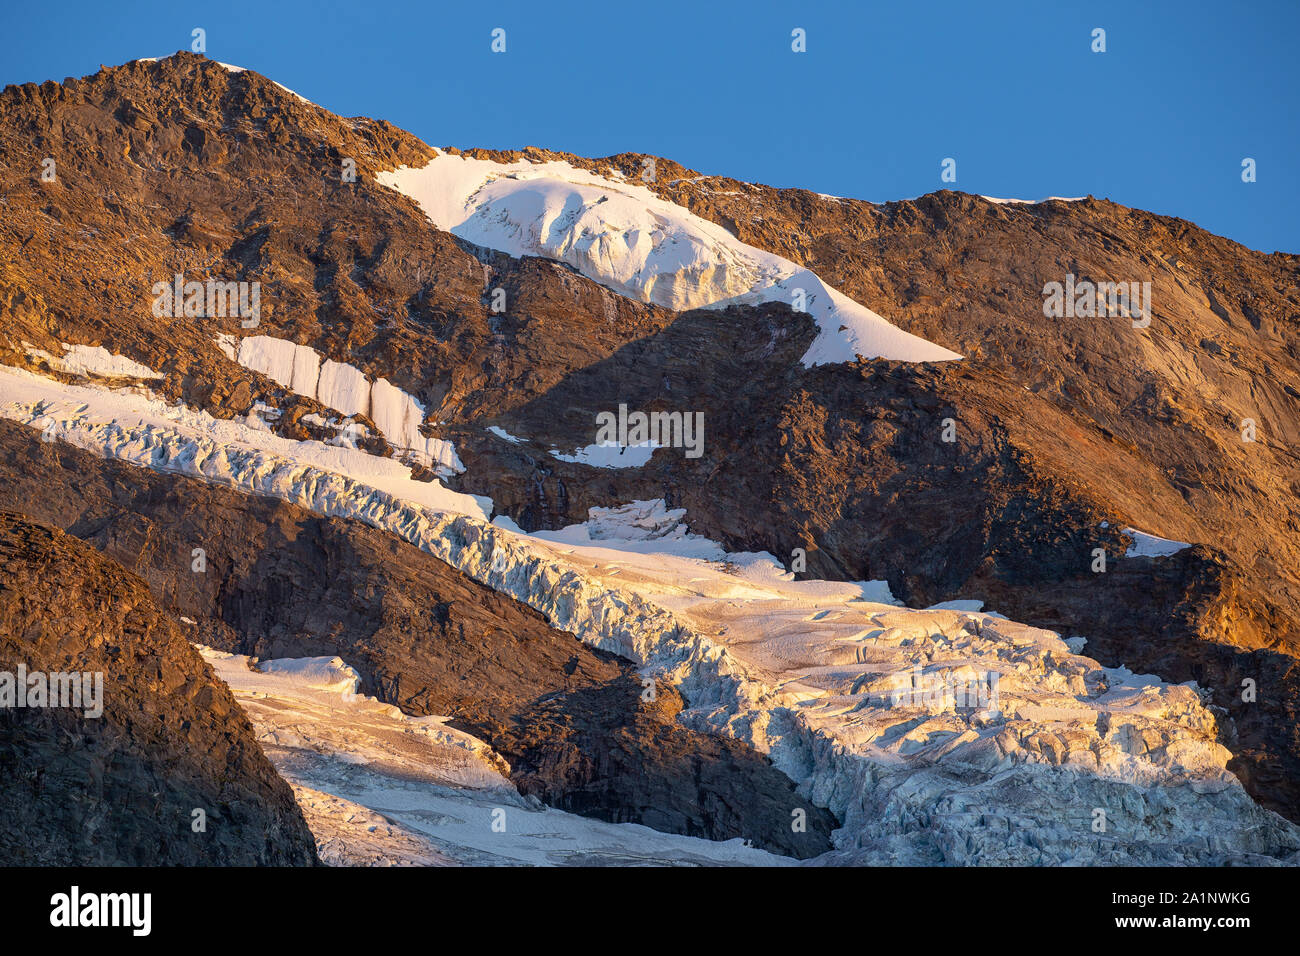 Krimmler Kees glacier. Seracs and crevasses. Sunset sunlight. Krimmler Achen valley. Hohe Tauern National Park. Austrian Alps. Glaciological aspects. Stock Photo